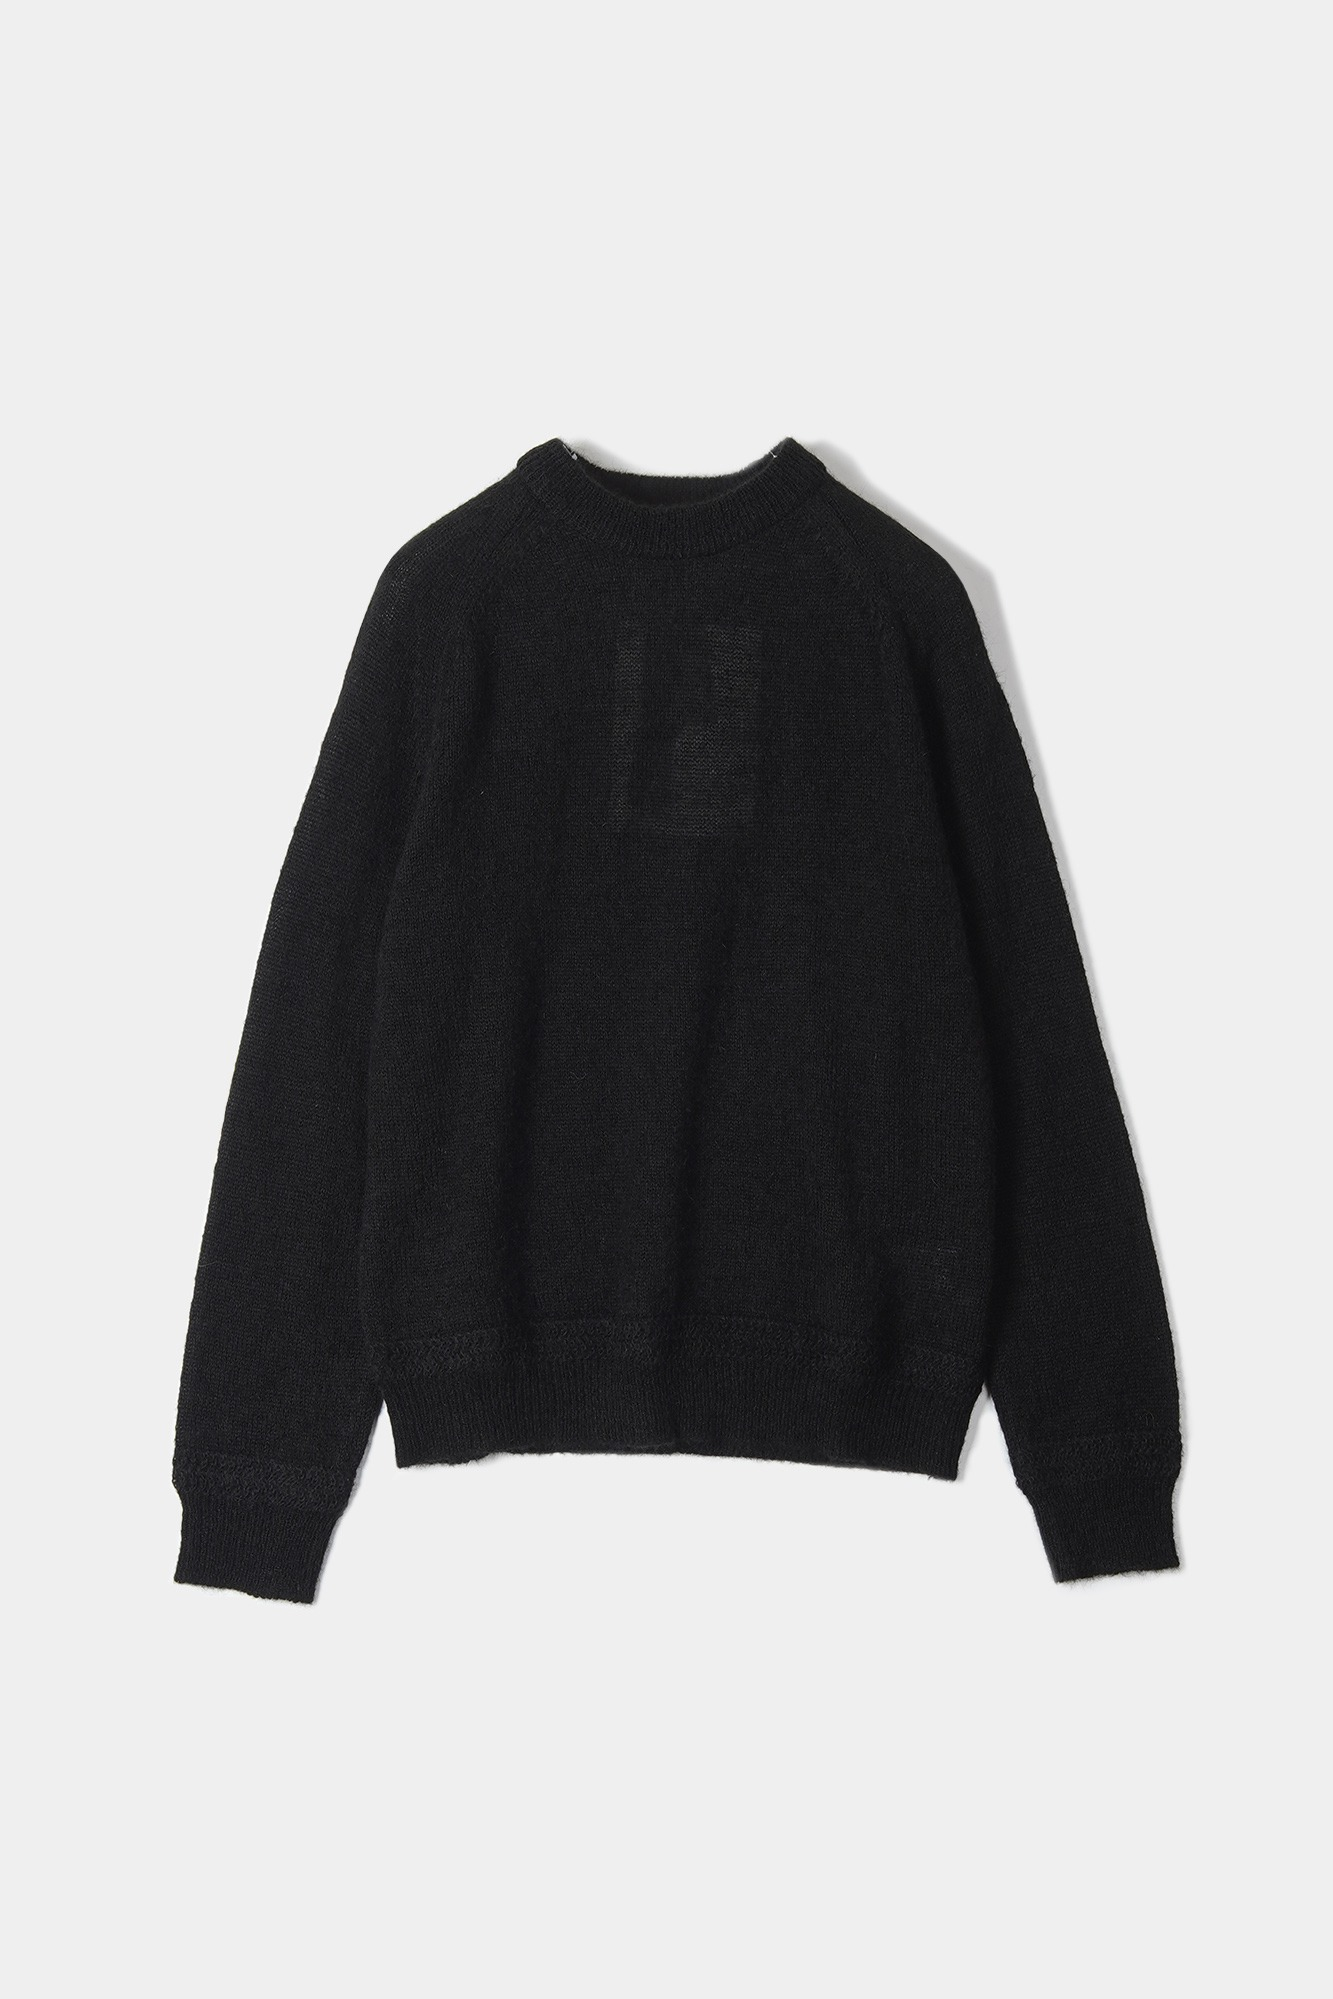 "OOPARTS Mohair boyfriends sweater ""Black"""